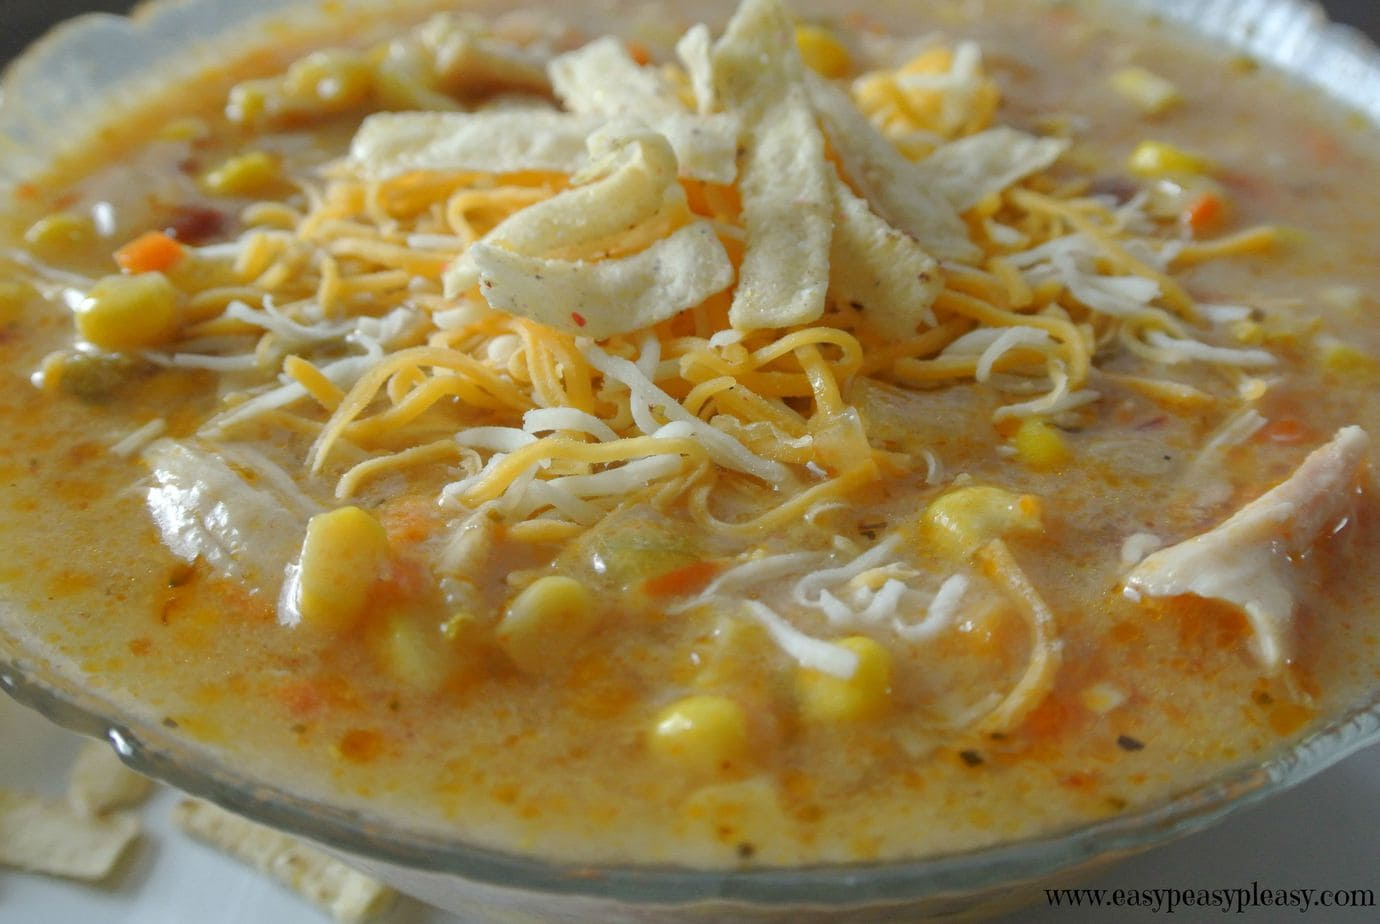 Chicken Chipotle Corn Chowder is the perfect spicy soup to warm you up on a cold day.